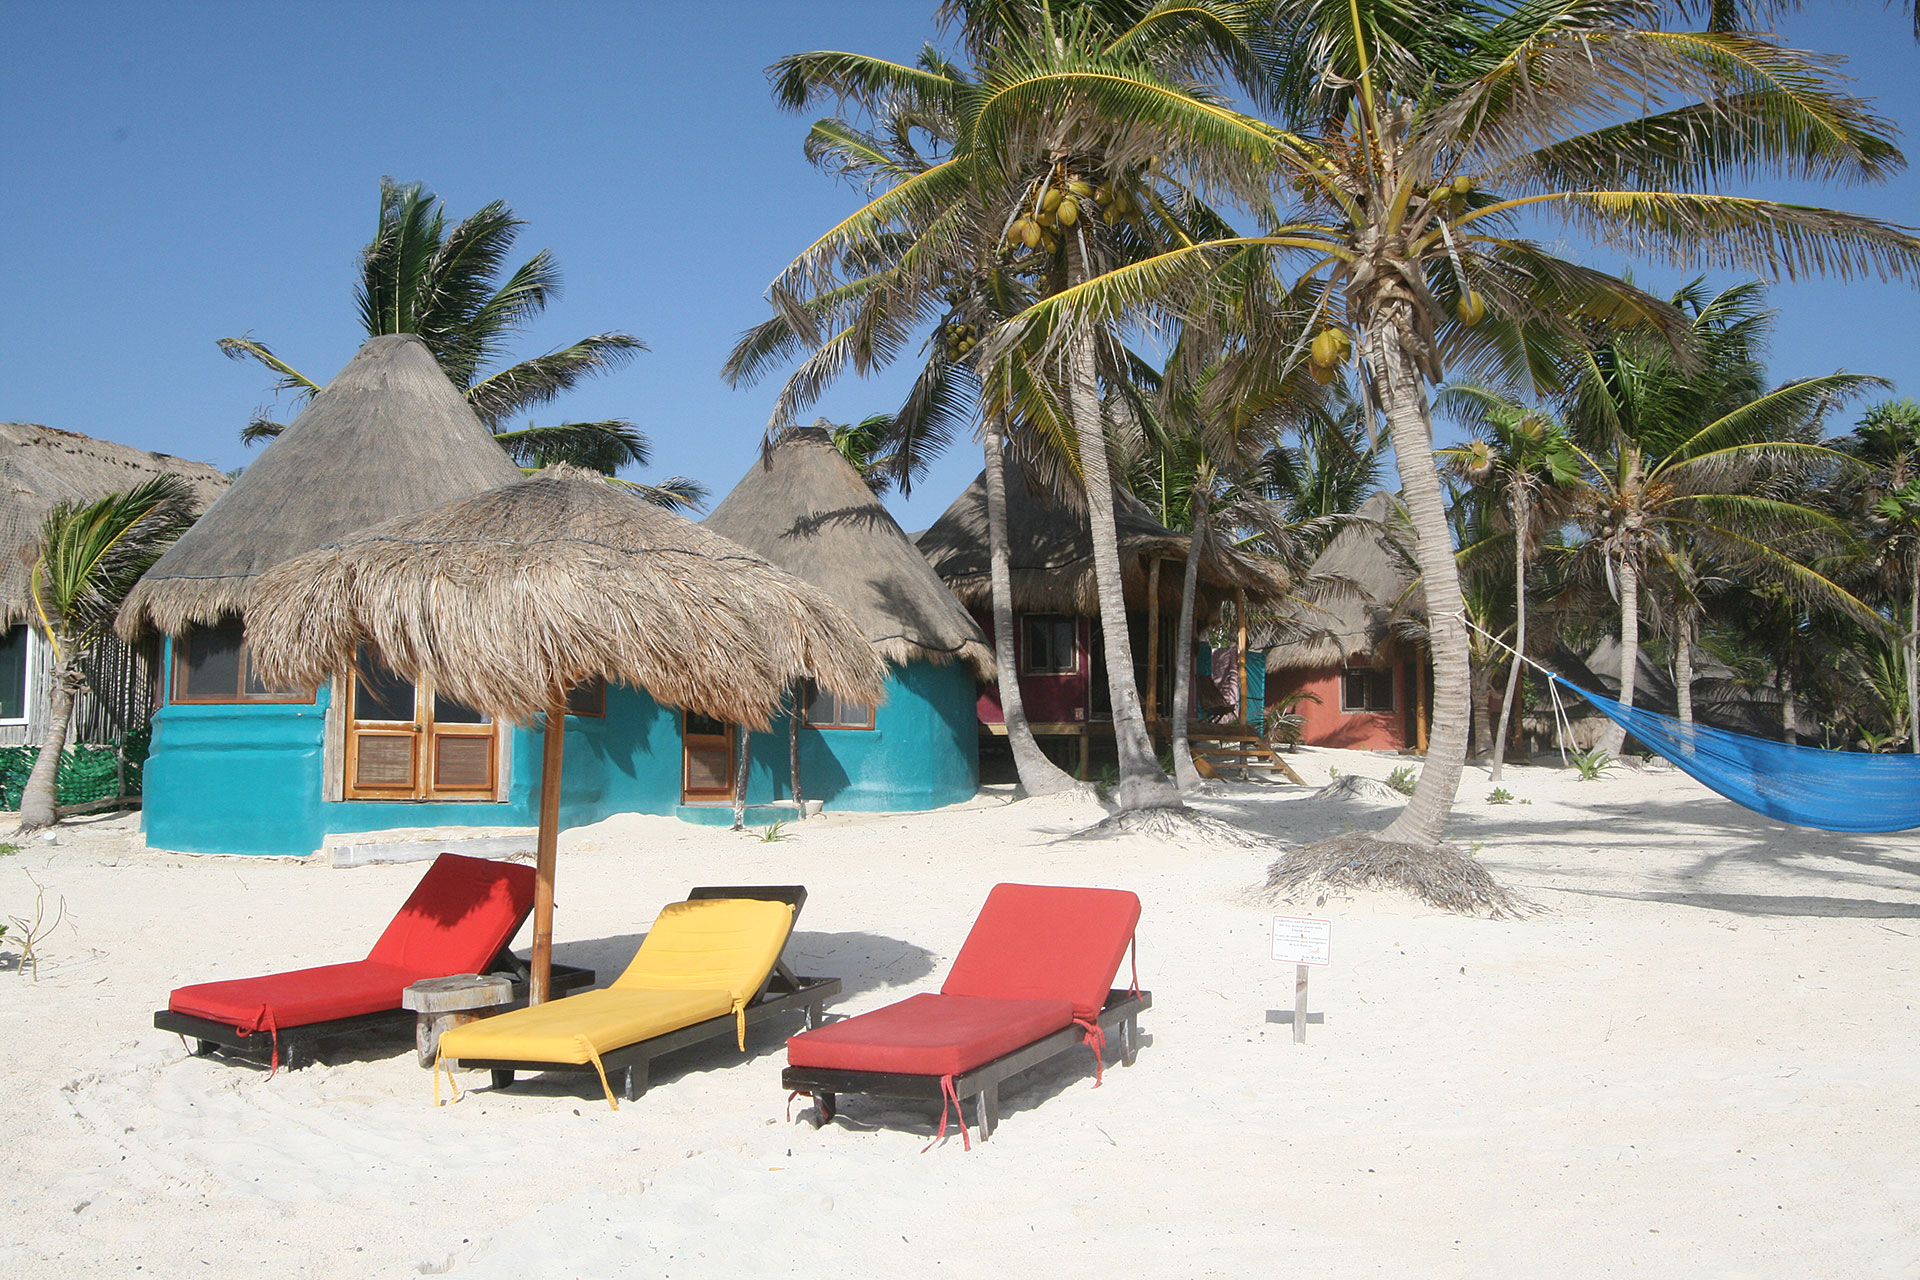 la Zebra Tulum, the beach